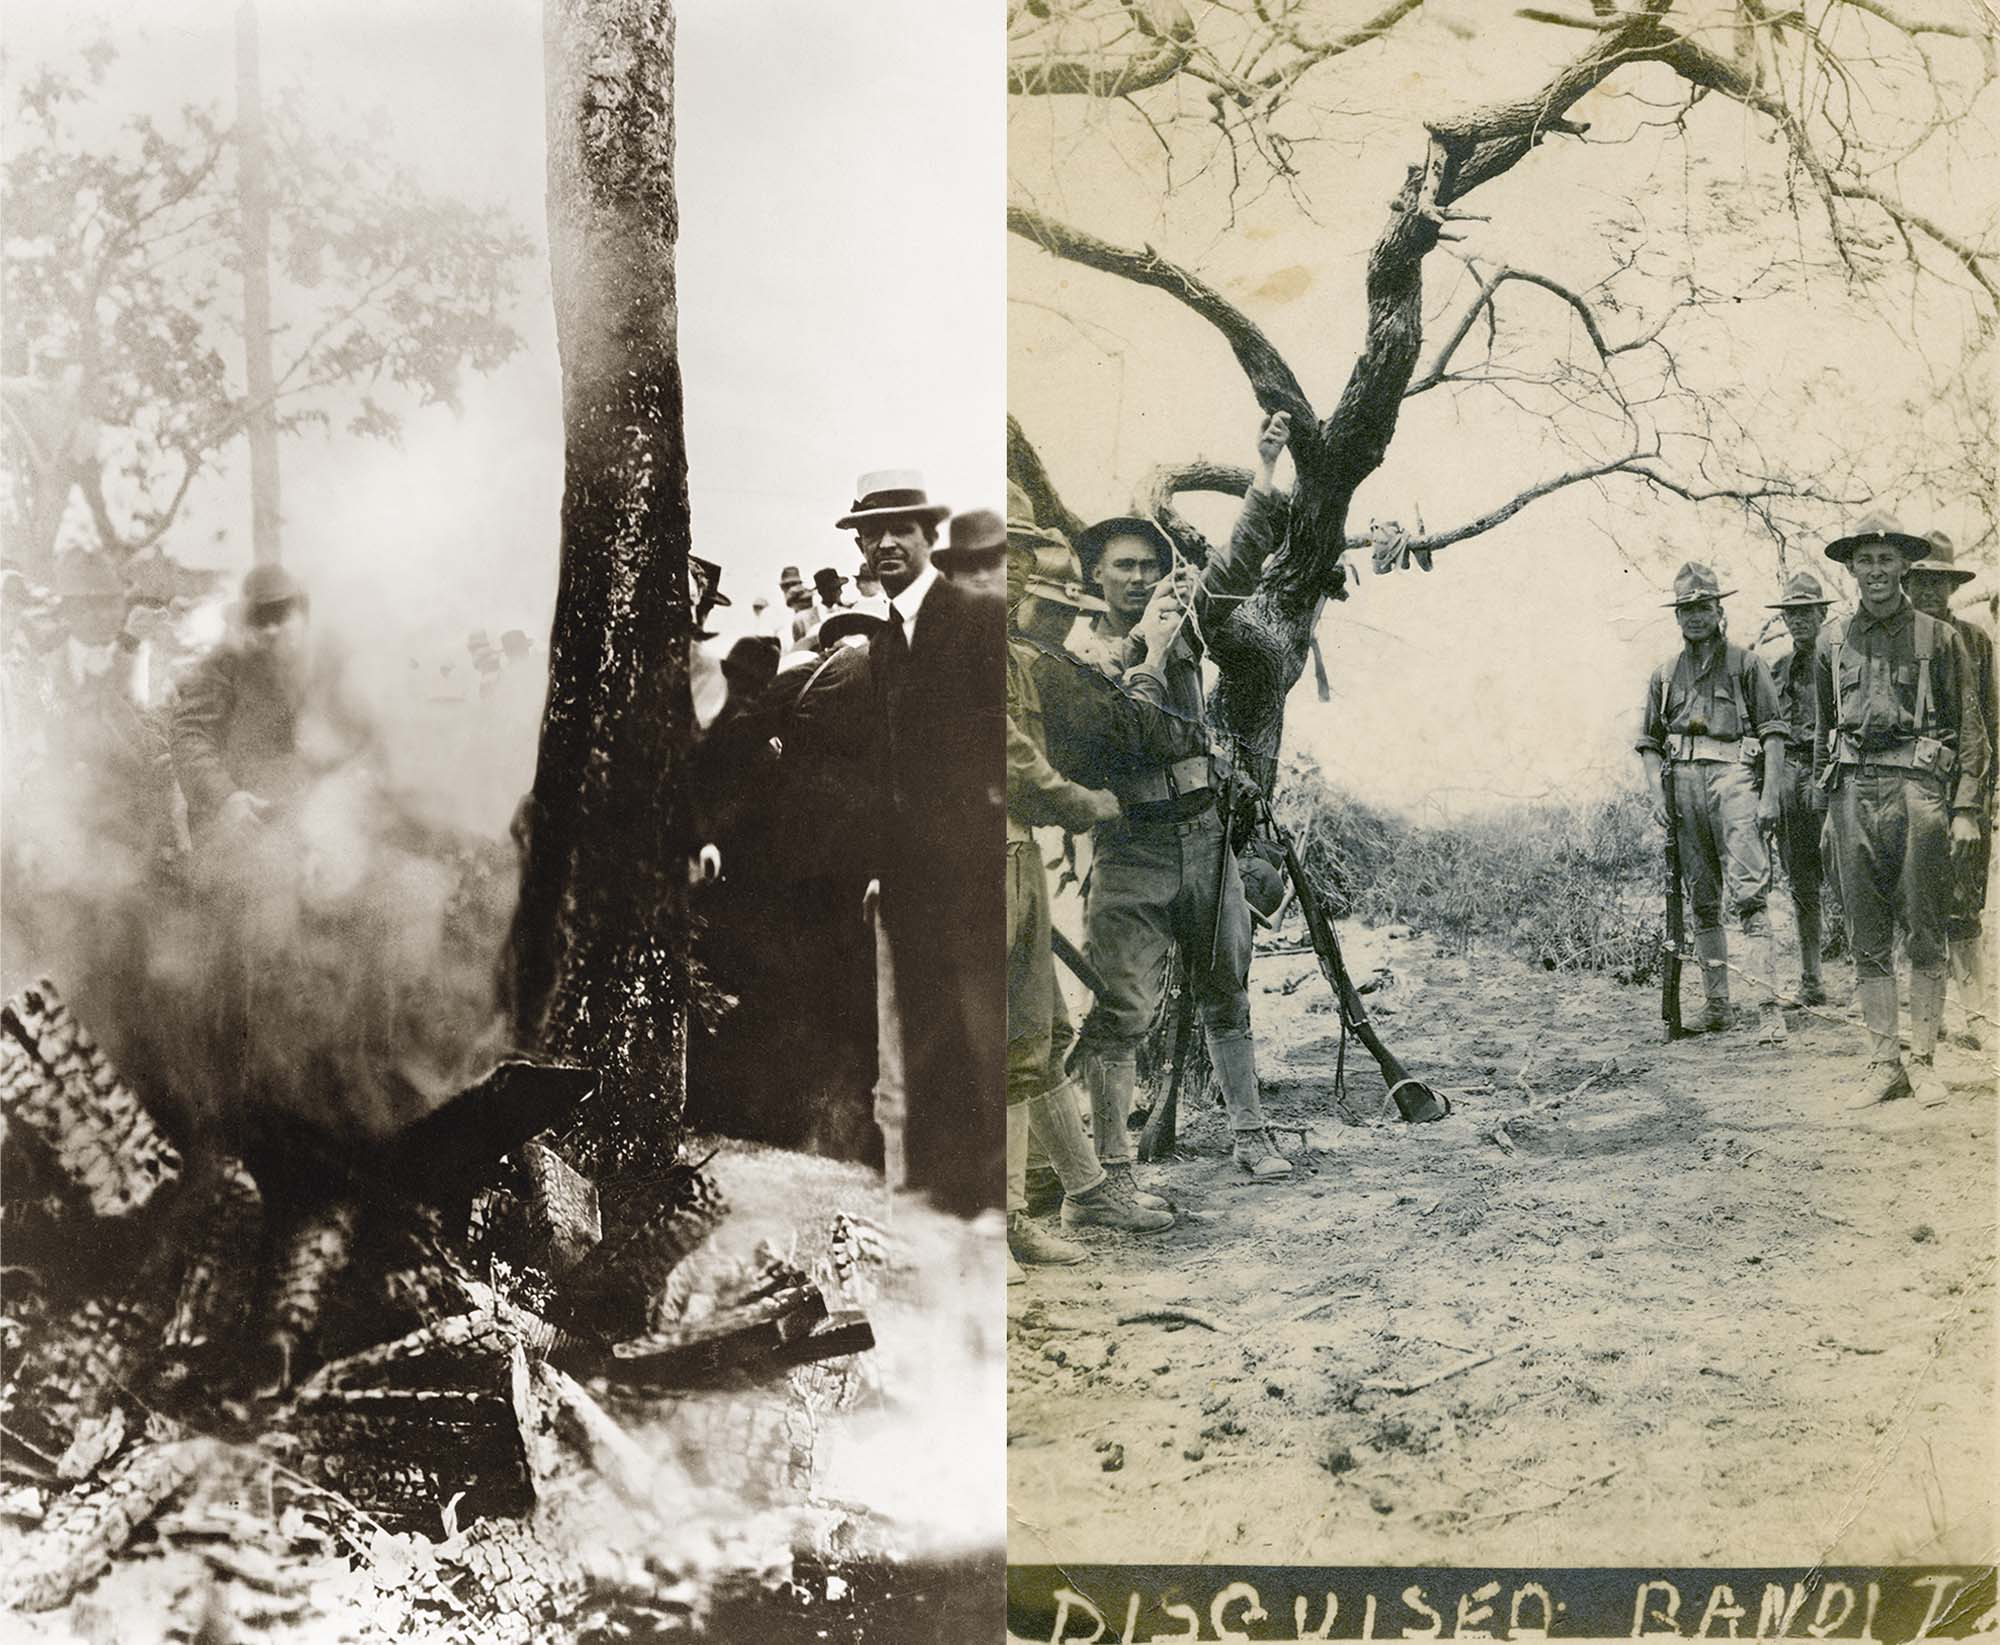 Black and Latino victims from the Erased Lynching Series